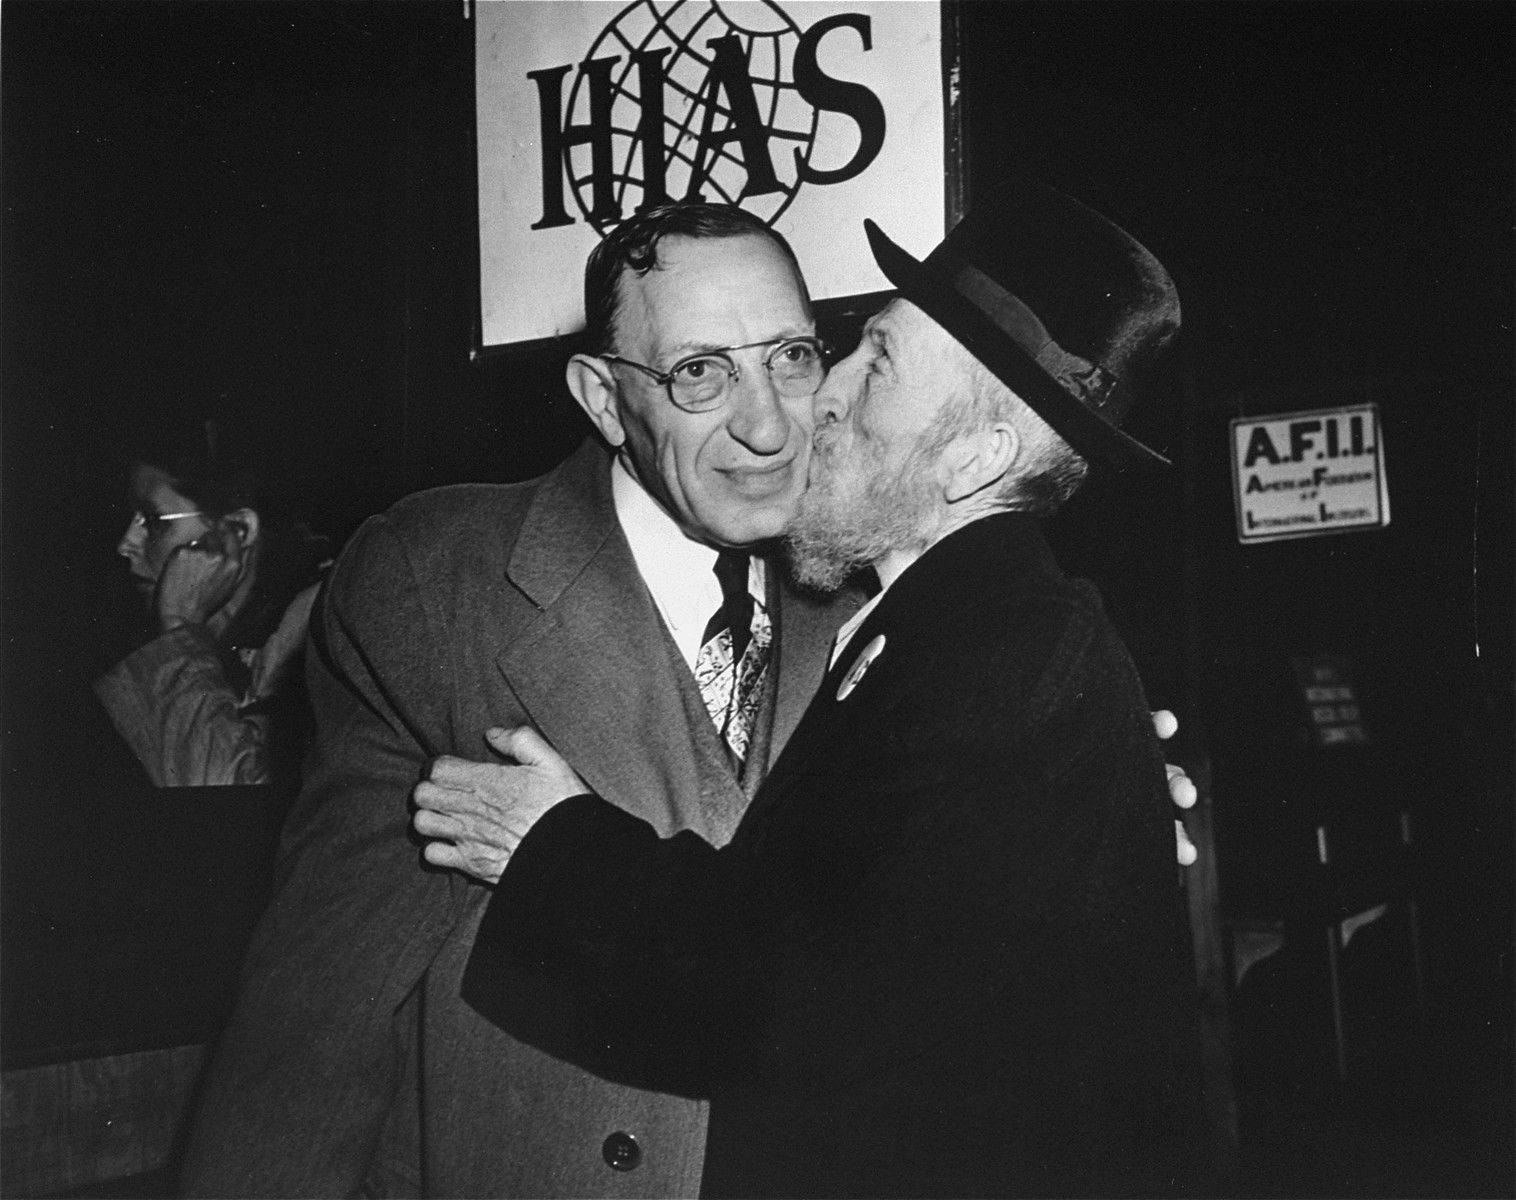 Two brothers from [Niski], Austria were reunited after more than fifty years when Israel Waissler landed in New York aboard the S.S. General Howze, and was greeted by his brother Samuel who arrived there in 1888.